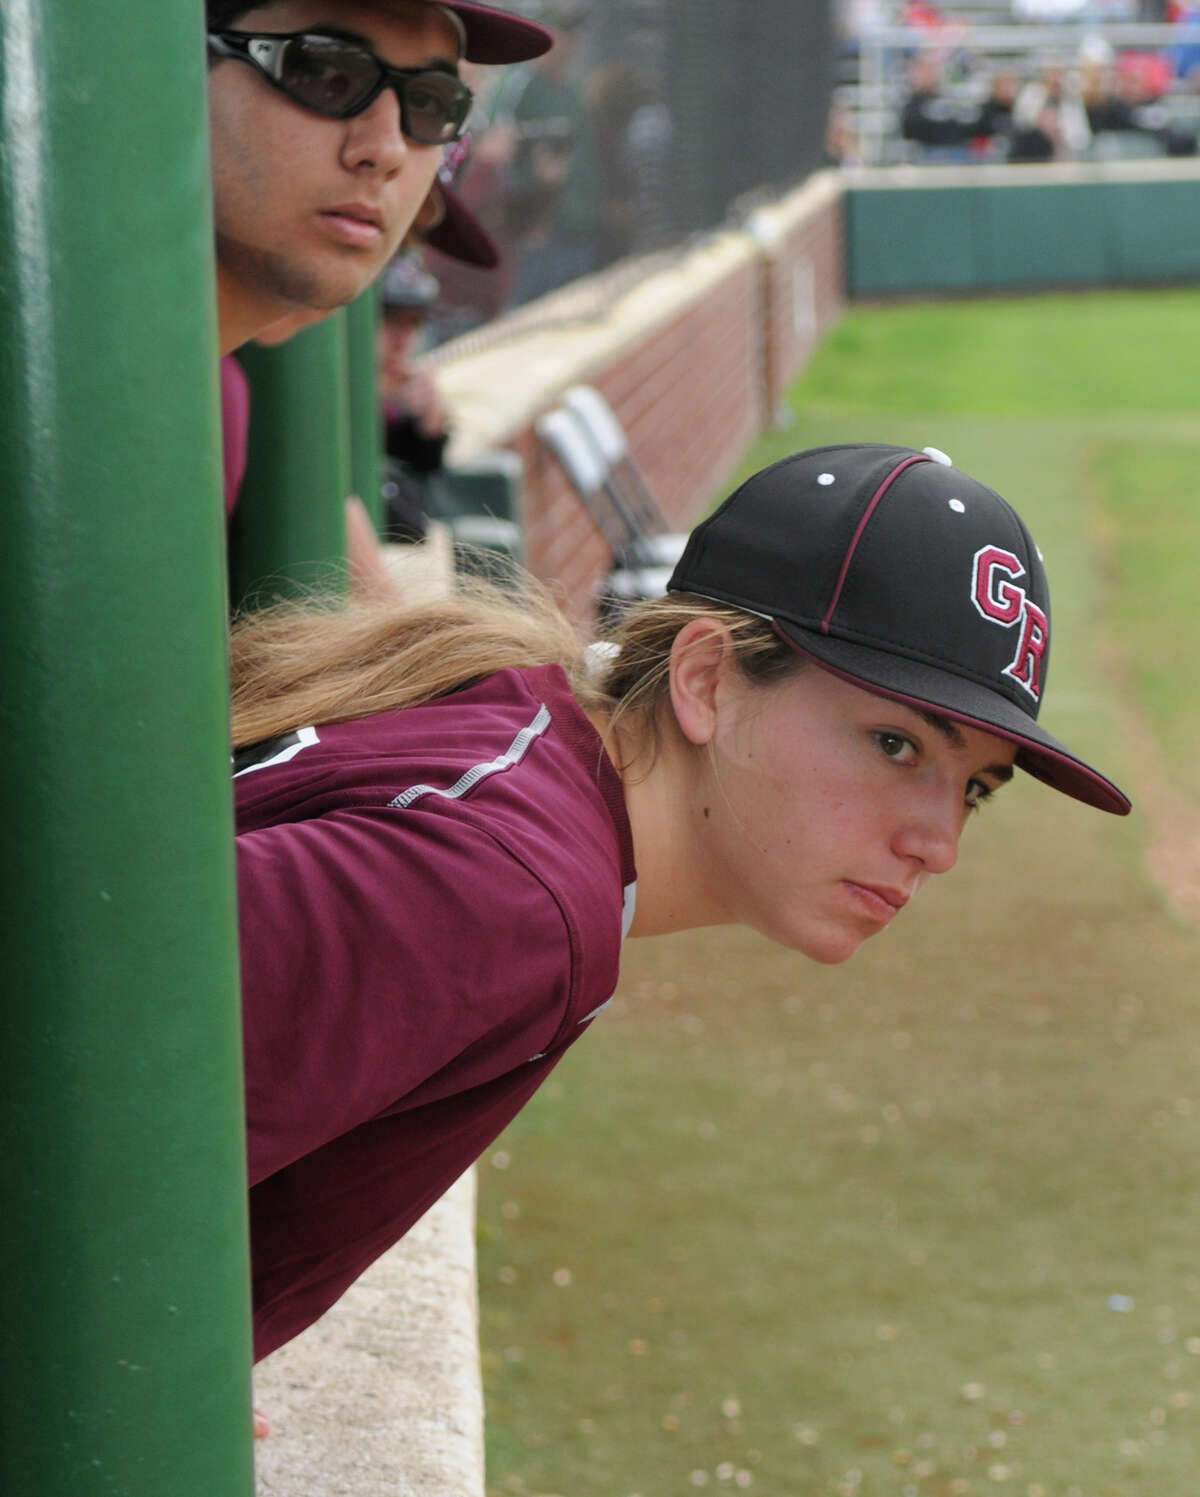 In the majors, they would call Sarah Hudek a crafty lefthander who relies on location and changing speeds to retire hitters.